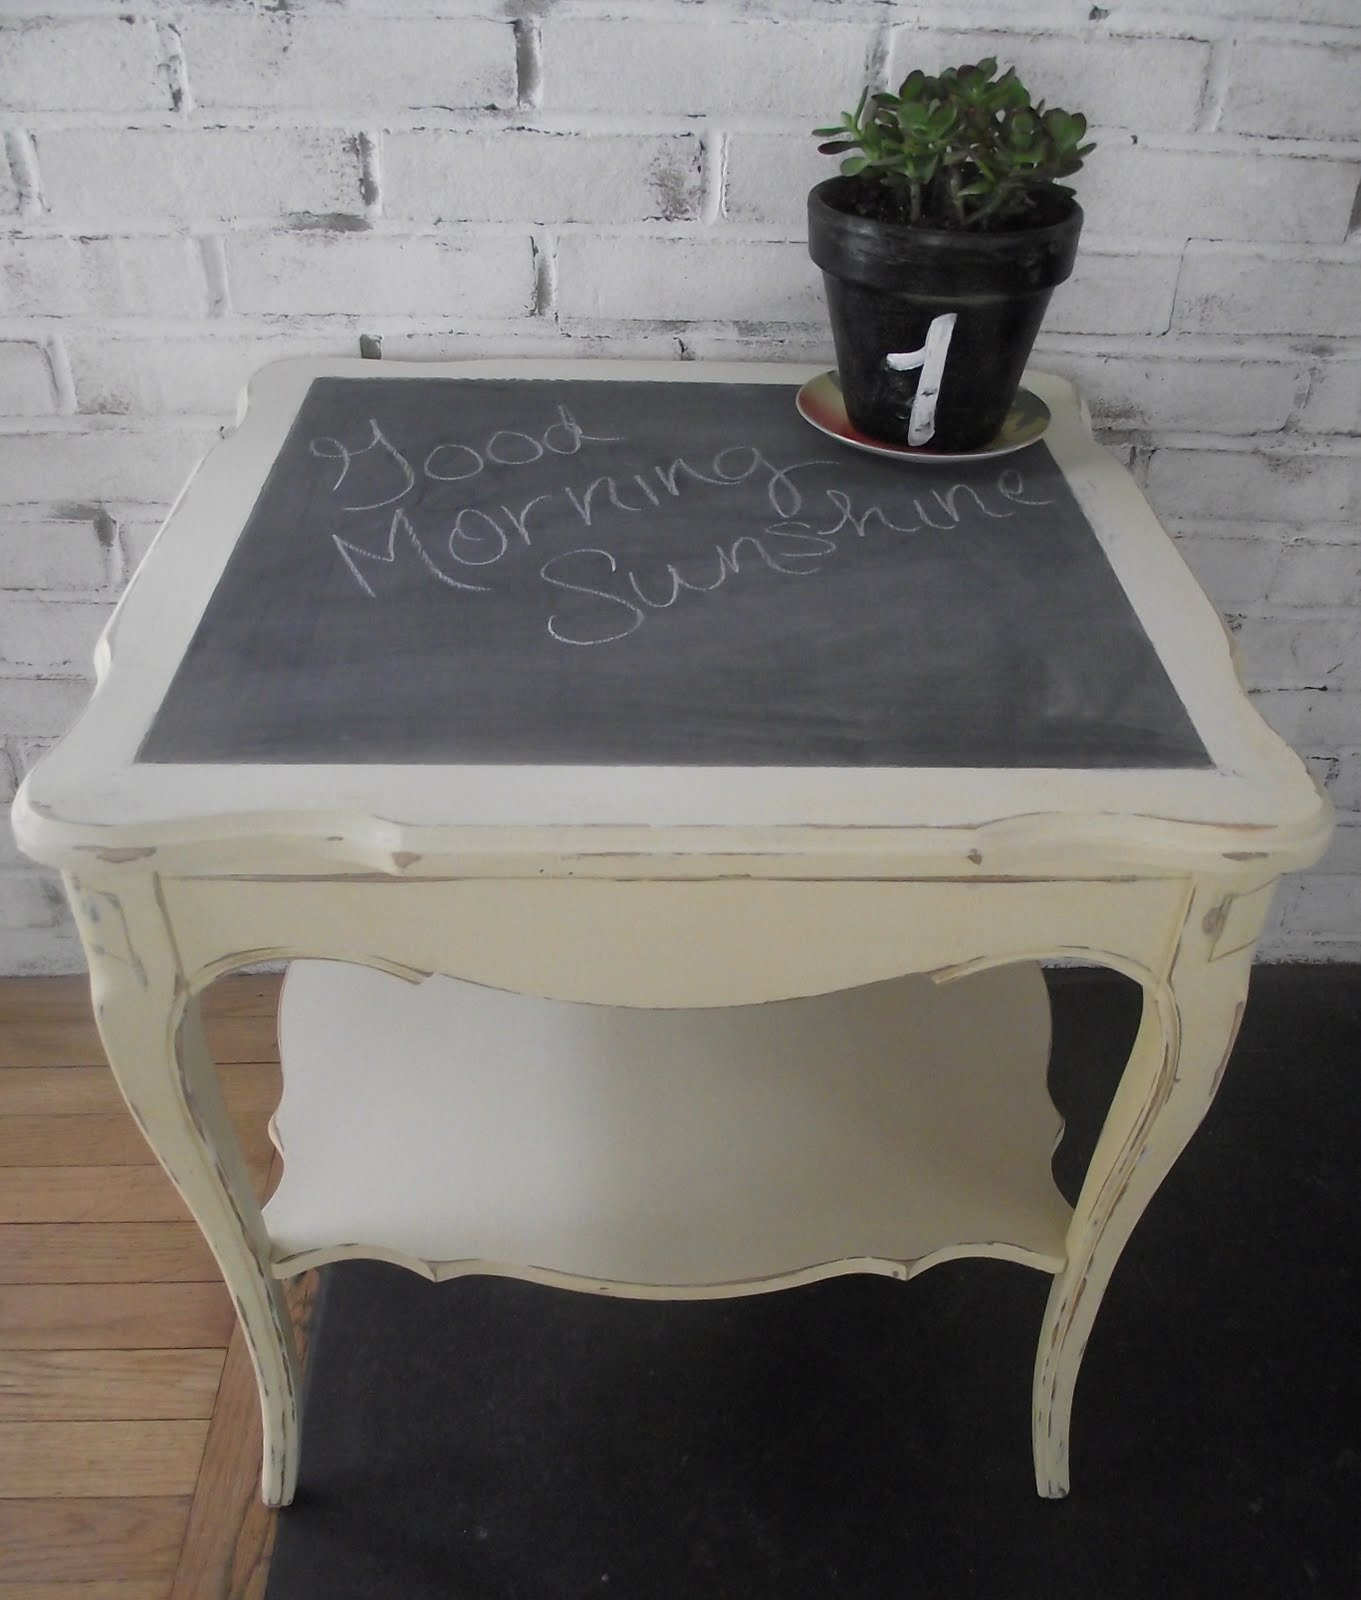 I Started By Painting The Piece A Simple Butter Cream Color. Once Dry, I  Painted The Top Insert With Chalkboard Paint. I Distressed The Piece And  VOILA!